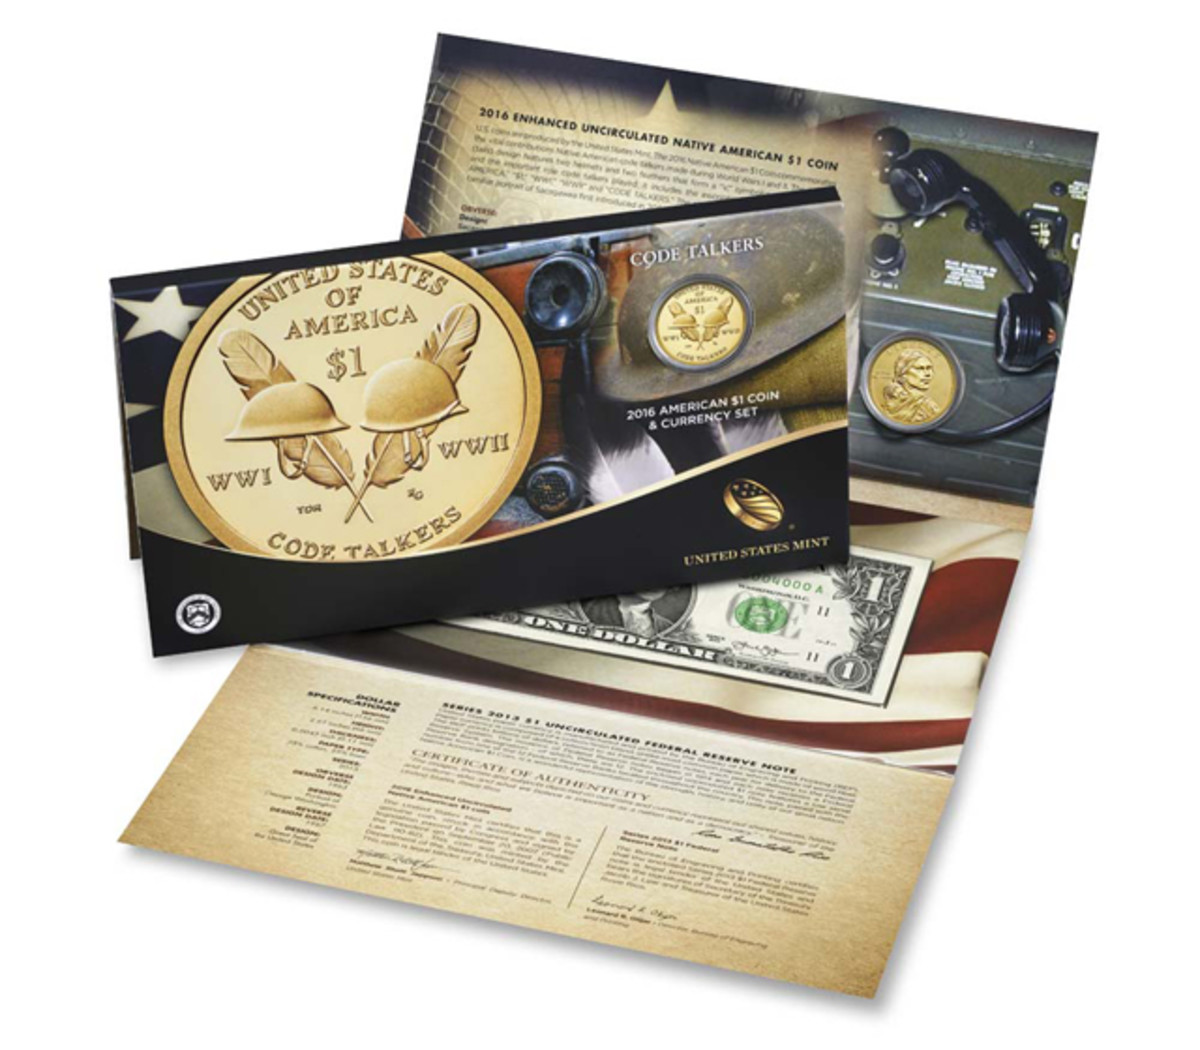 The 2016 Native American Dollar Coin and Currency set.